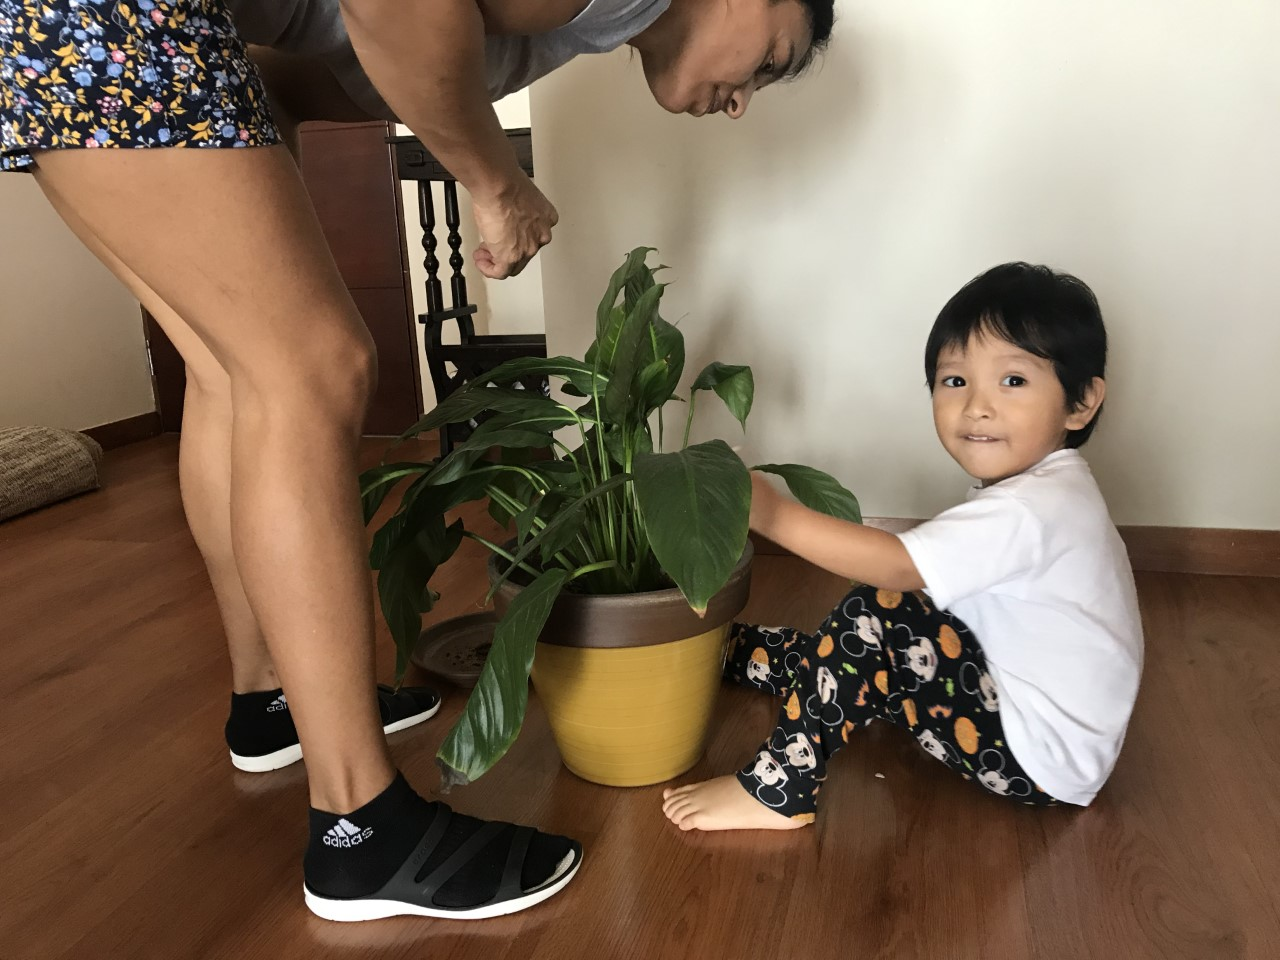 Jenny helps keep Thiago active and entertained by caring for the plants.